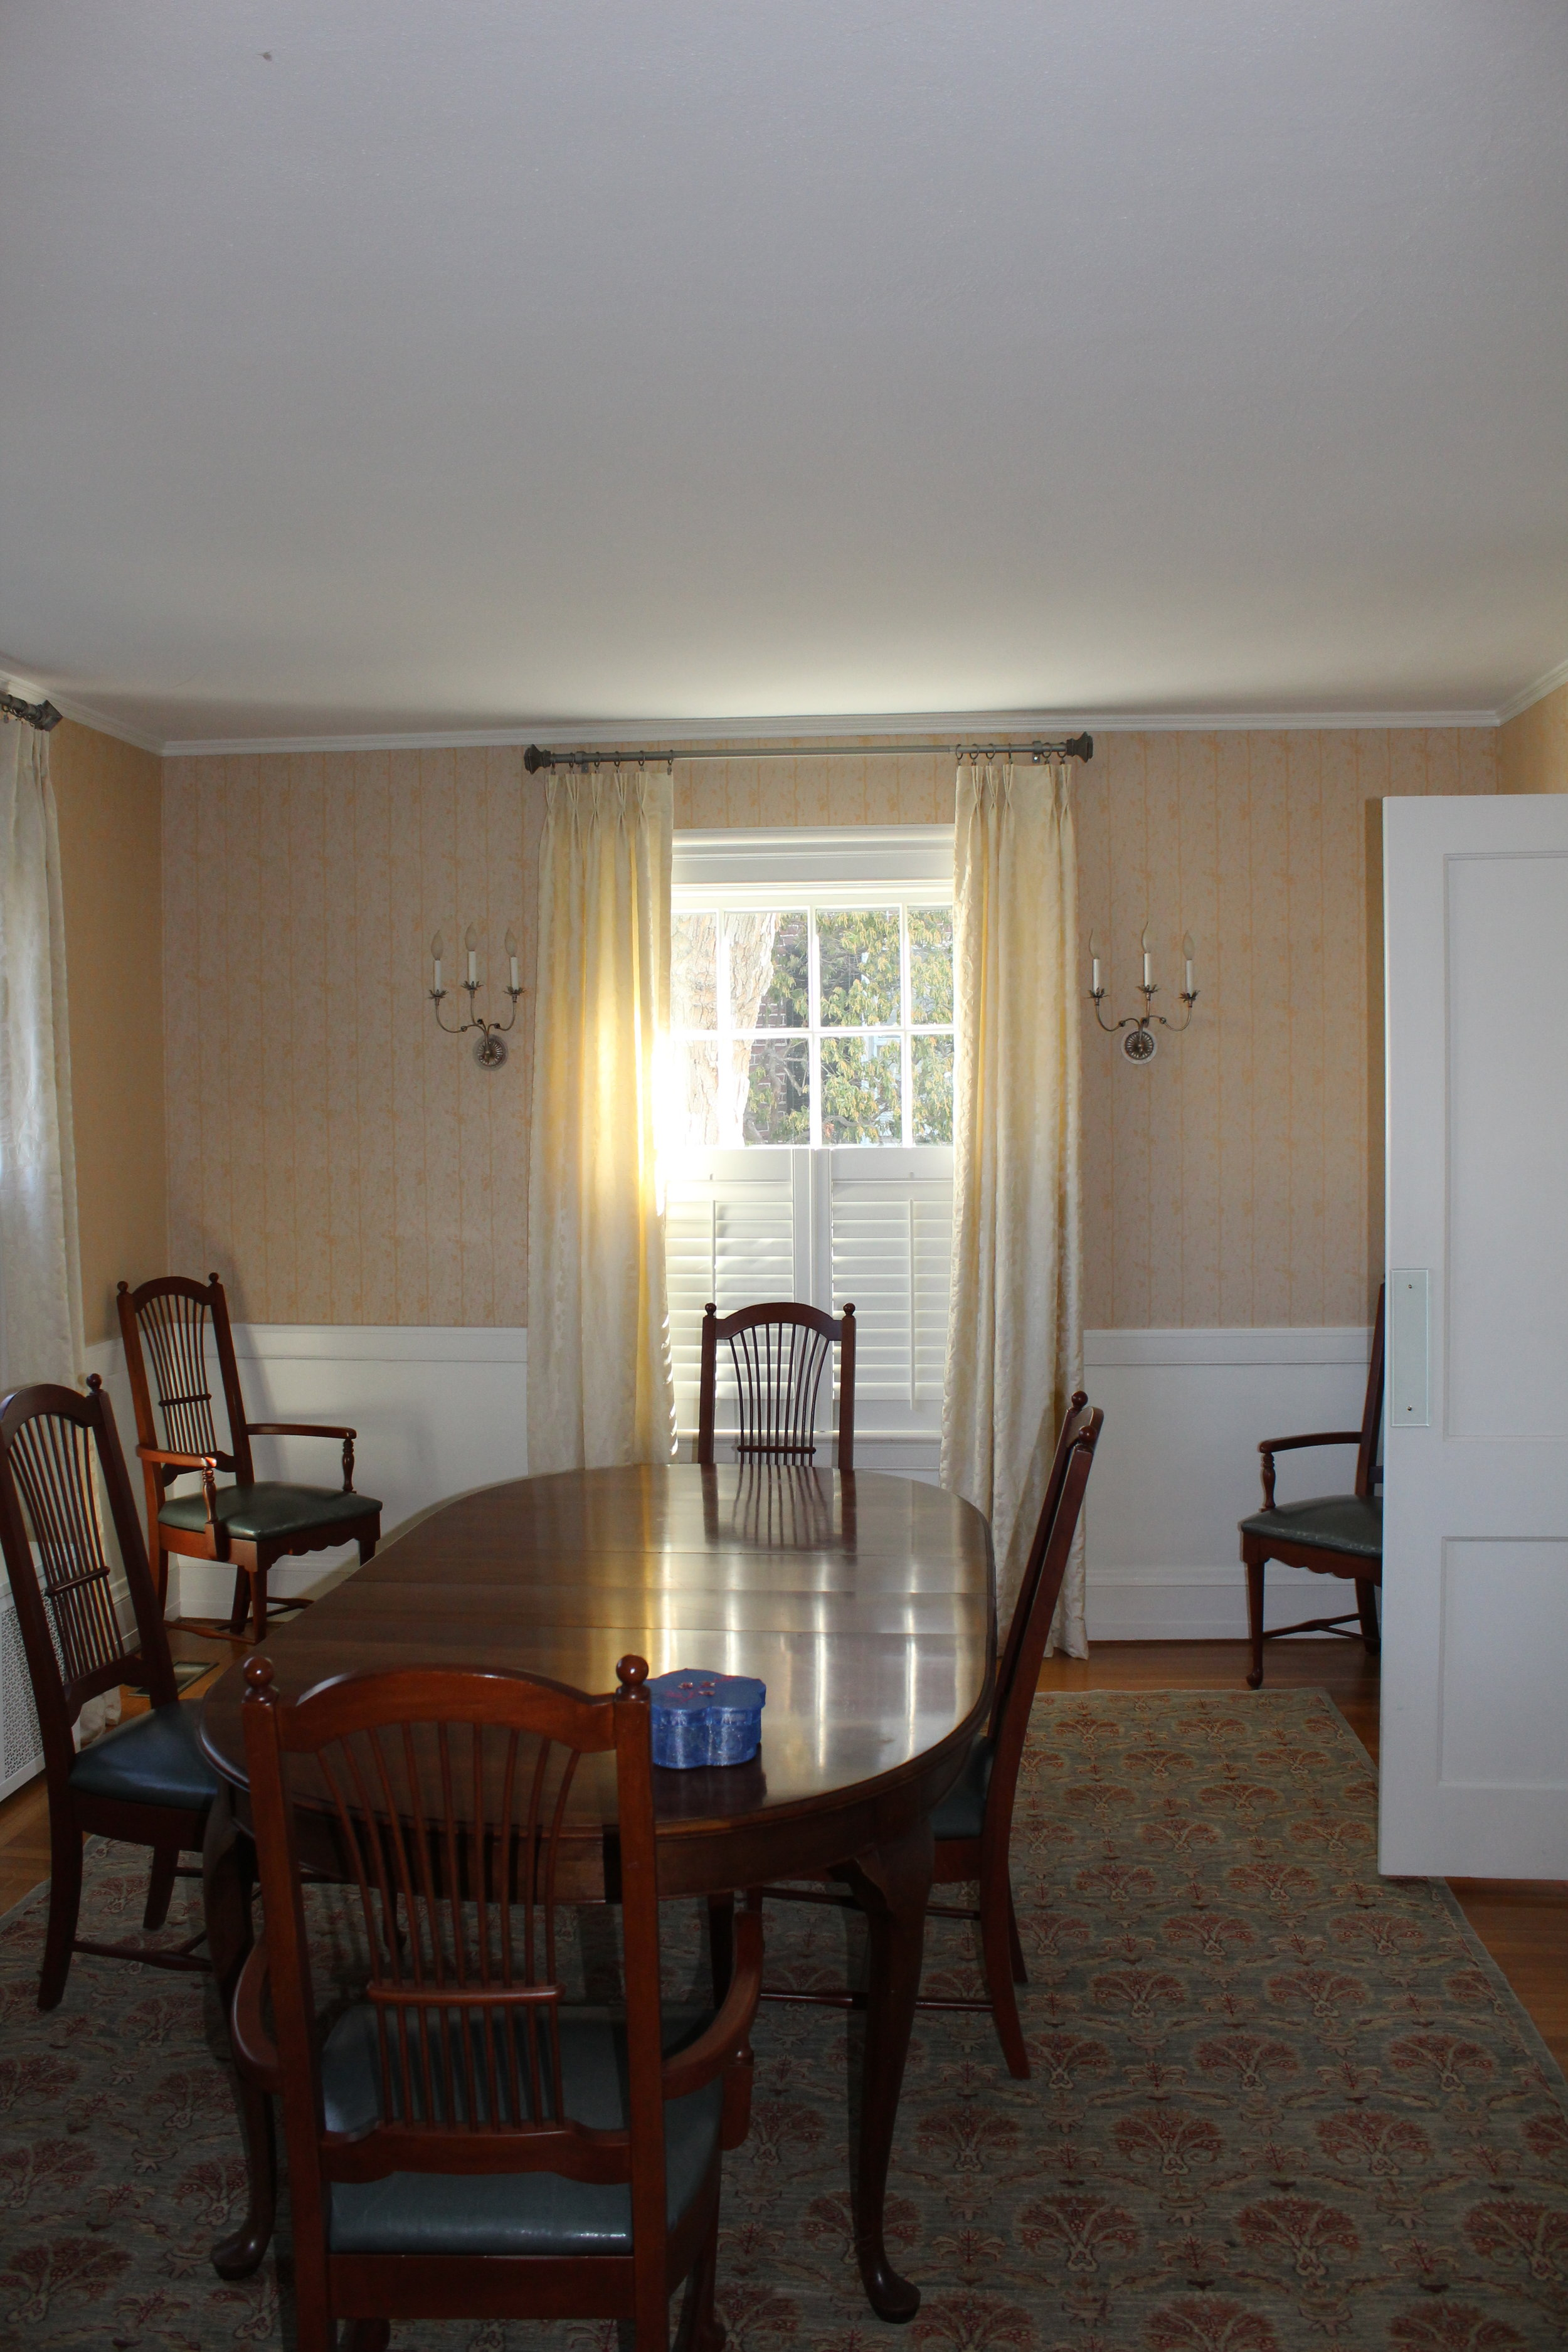 The dining room, full of windows, was far too dark for their liking and isolated from the rest of the first floor.